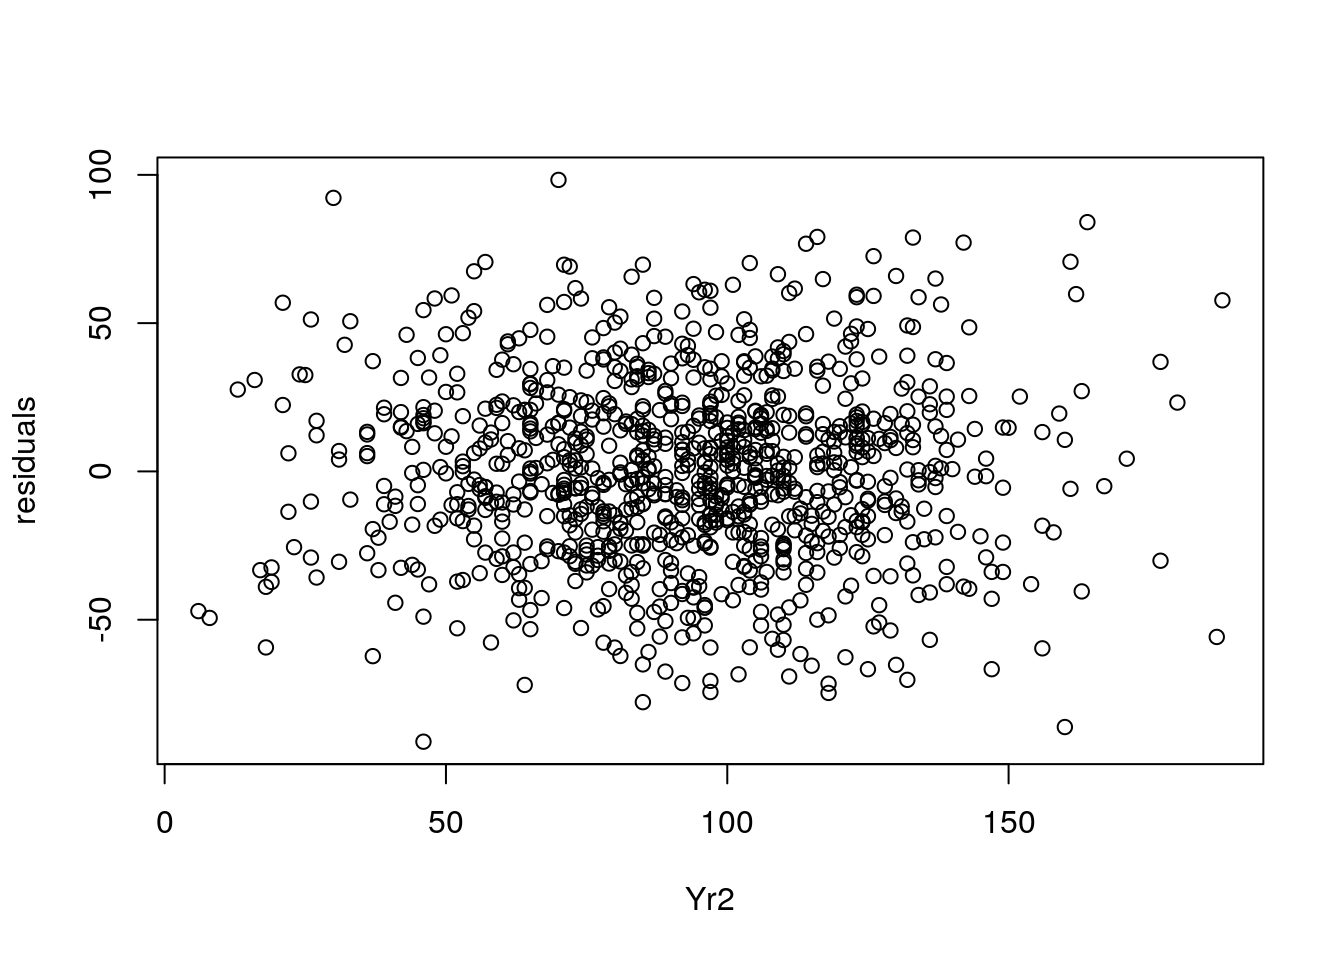 Plot of residuals against `Yr2` values